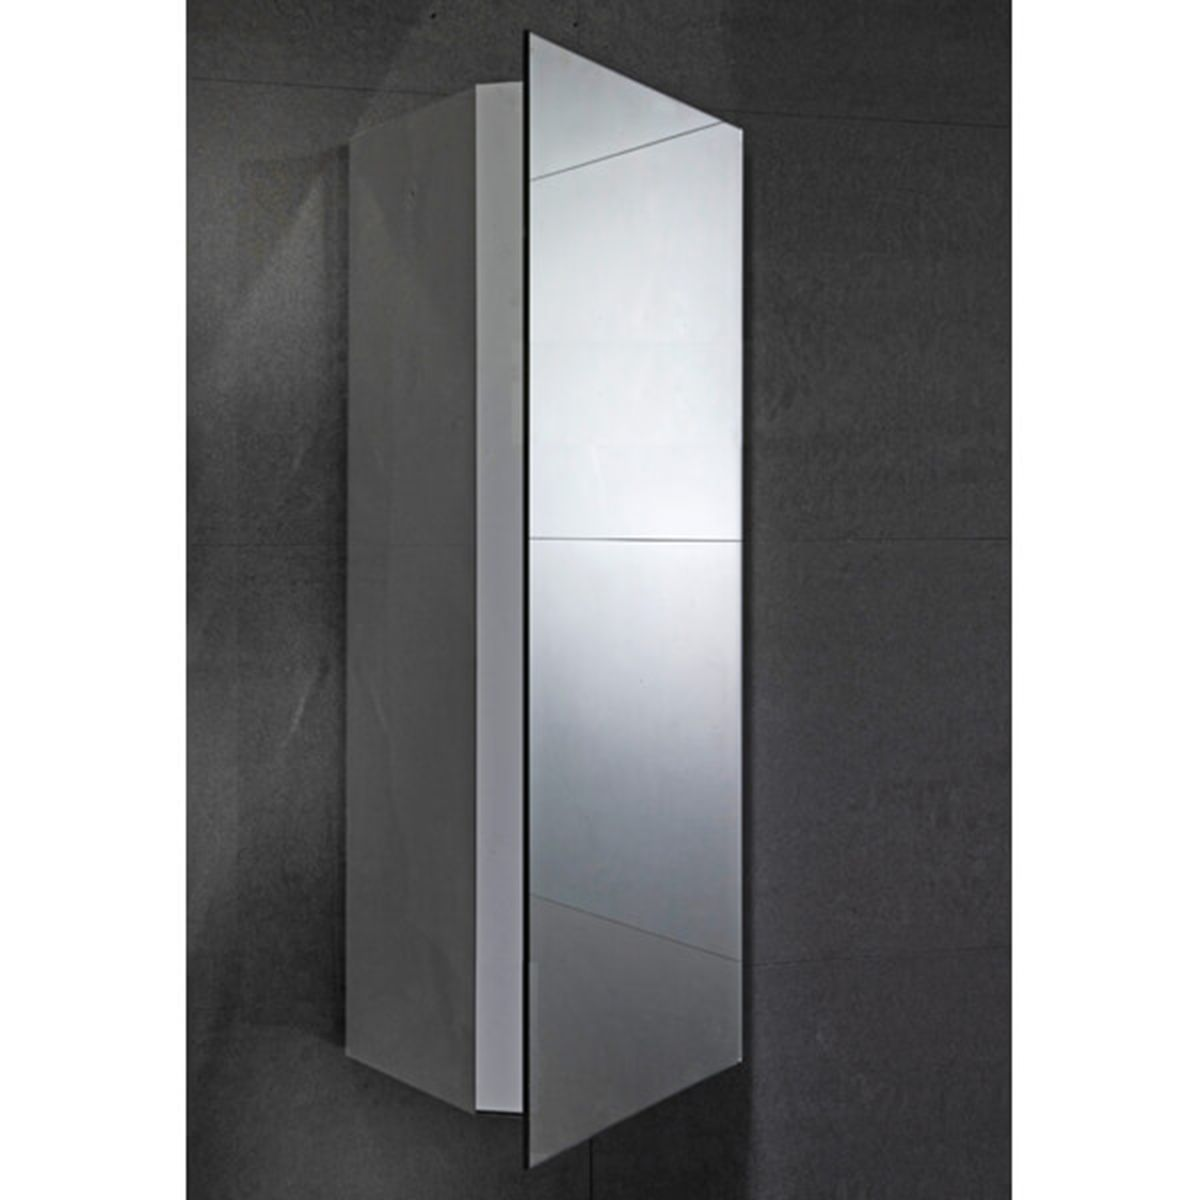 Frontline Alcove Corner Mirrored Bathroom Cabinet